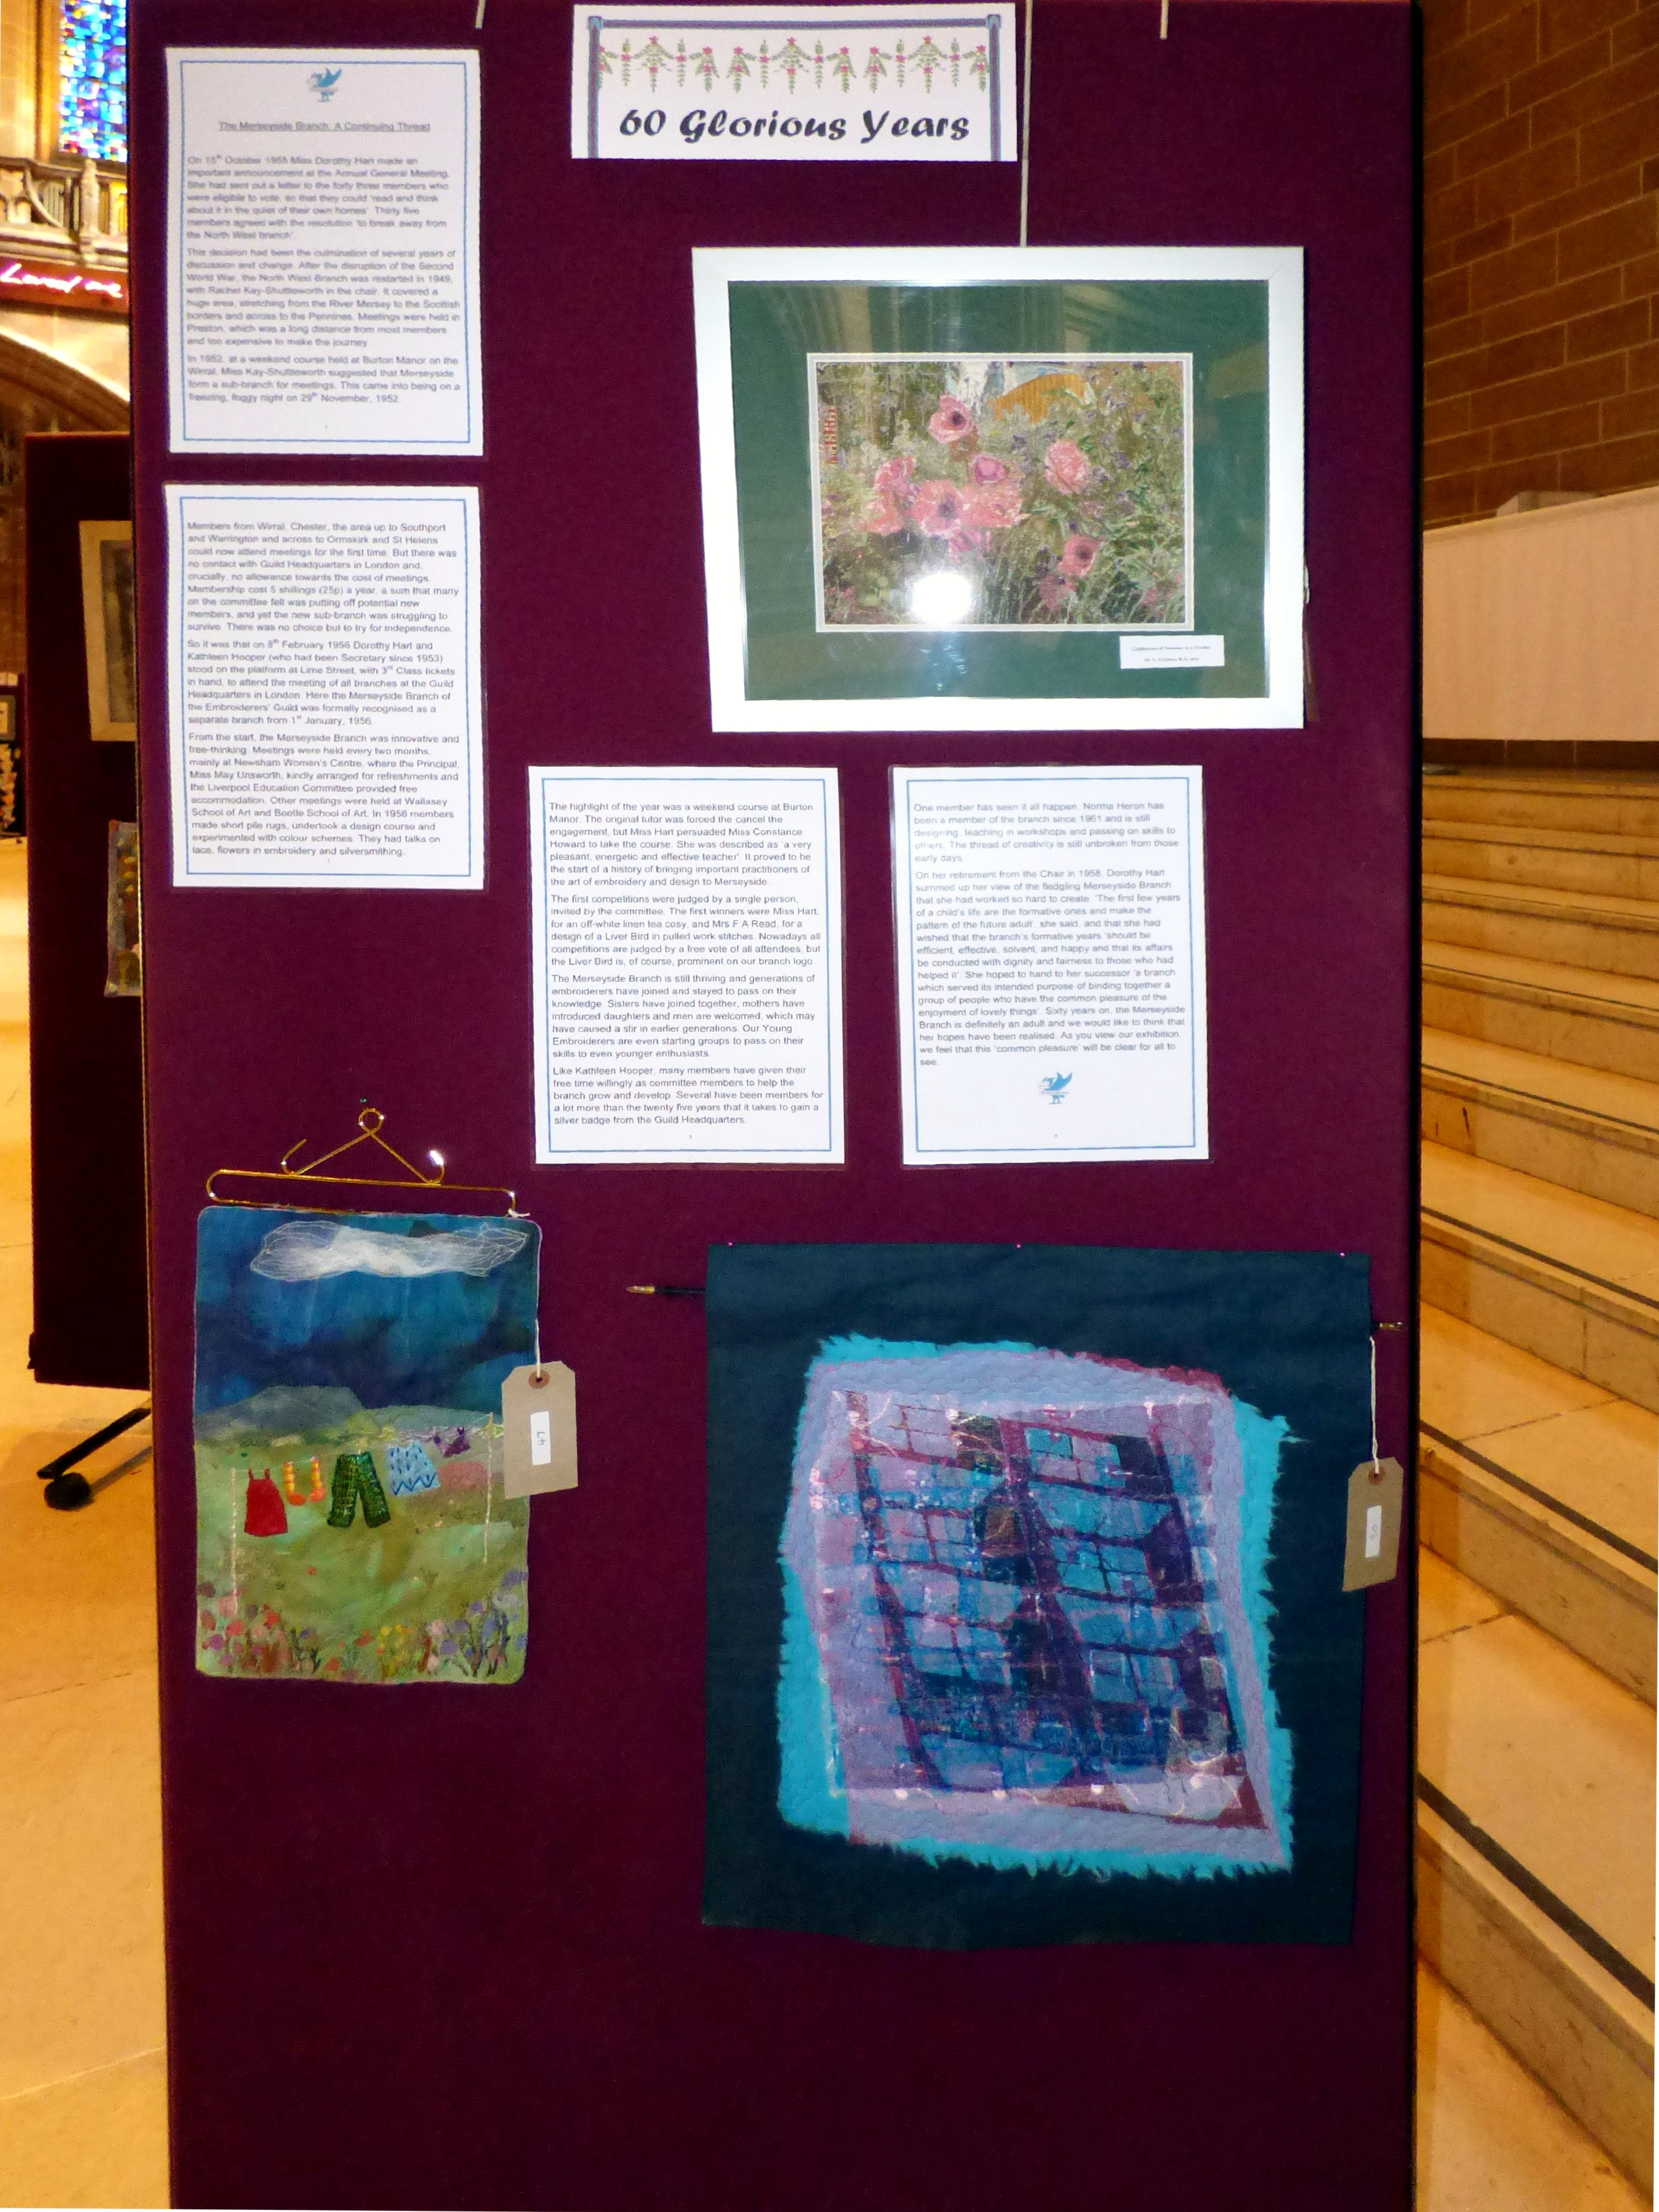 CELEBRATION OF A SUMMER GARDEN by Margaret Crichton, WASHING LINE by Mal Ralston and REFLECTIONS by Elsie Watkins at 60 Glorious Years exhibition 2016